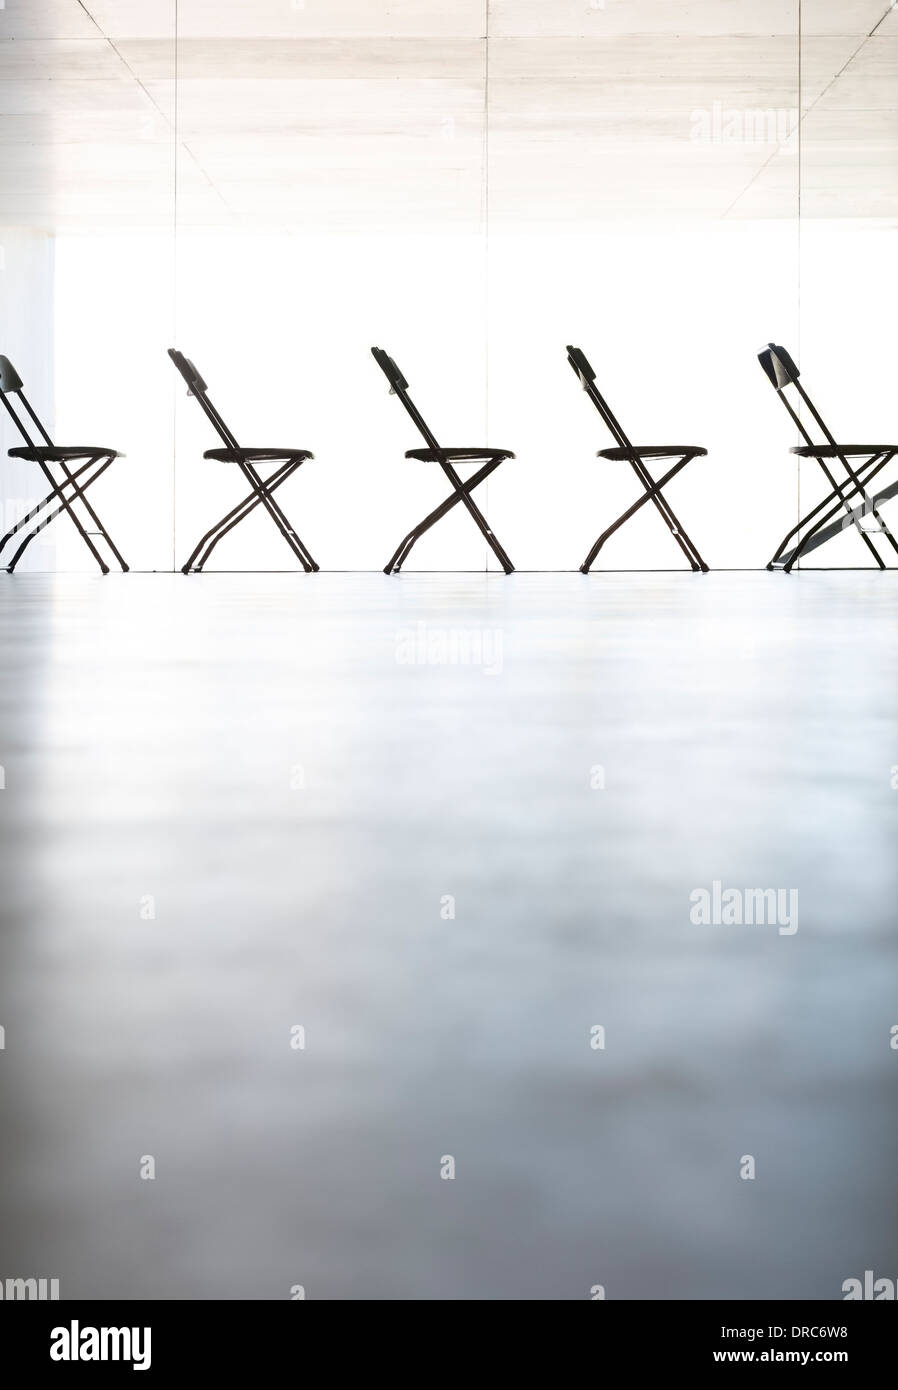 Chairs lined up in a row in office - Stock Image